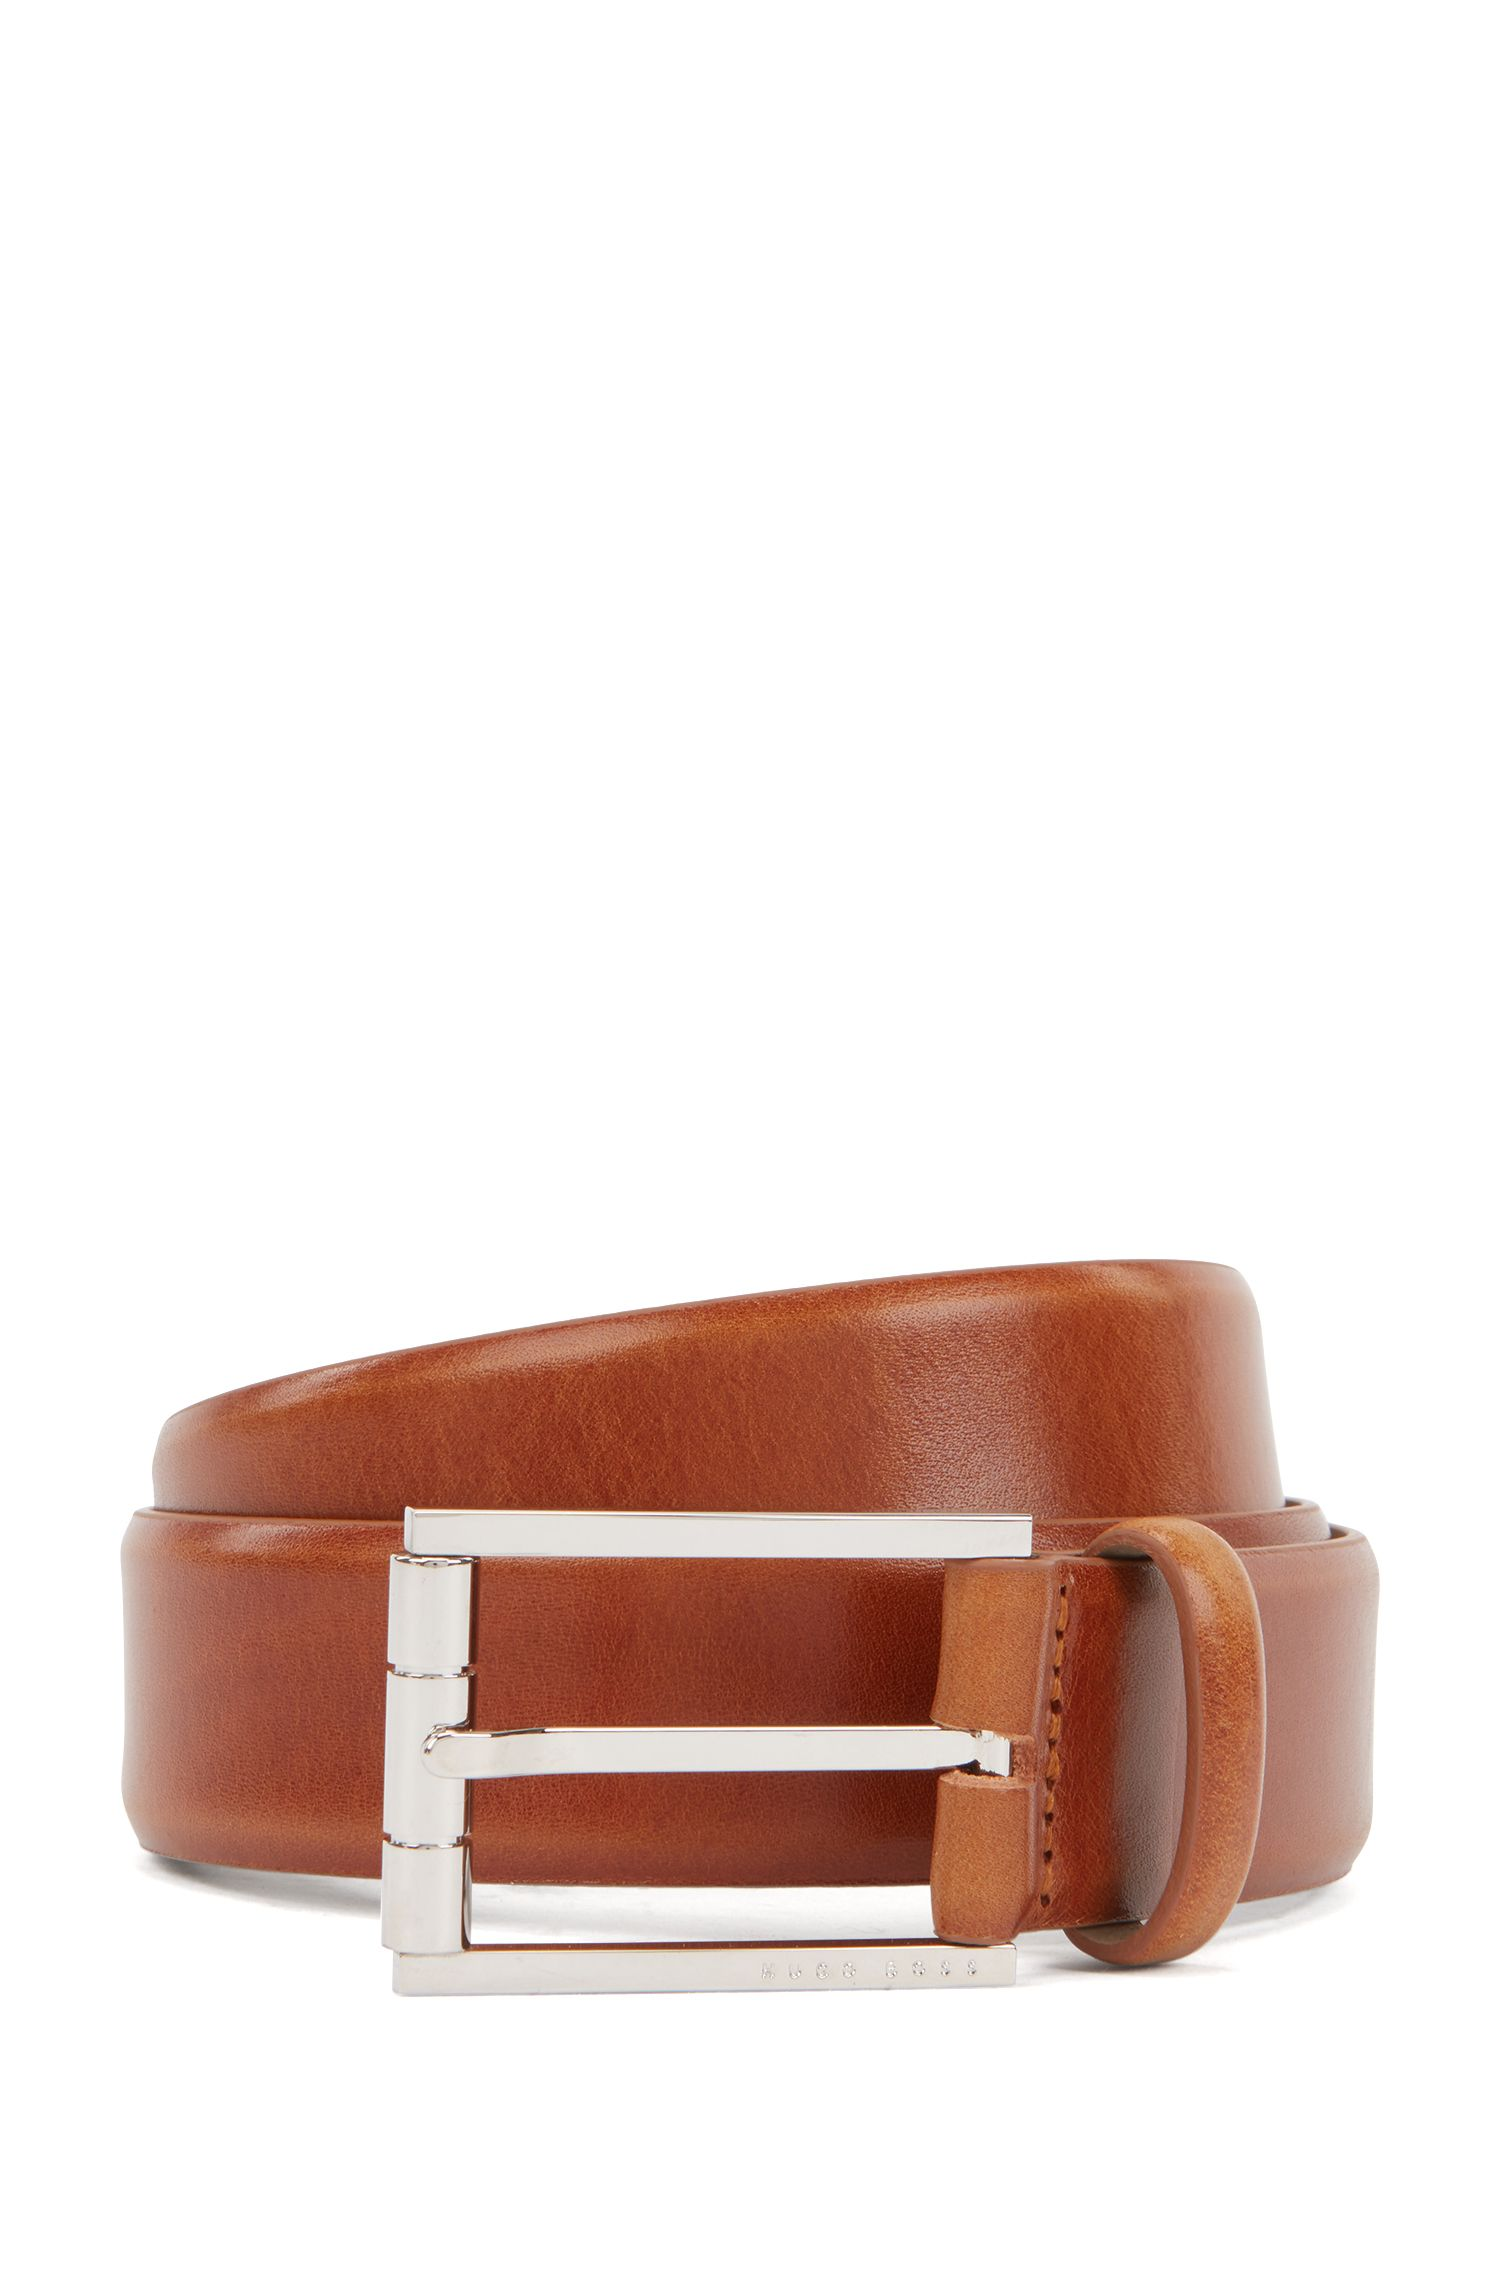 Italian leather belt with a polished roller buckle, Brown